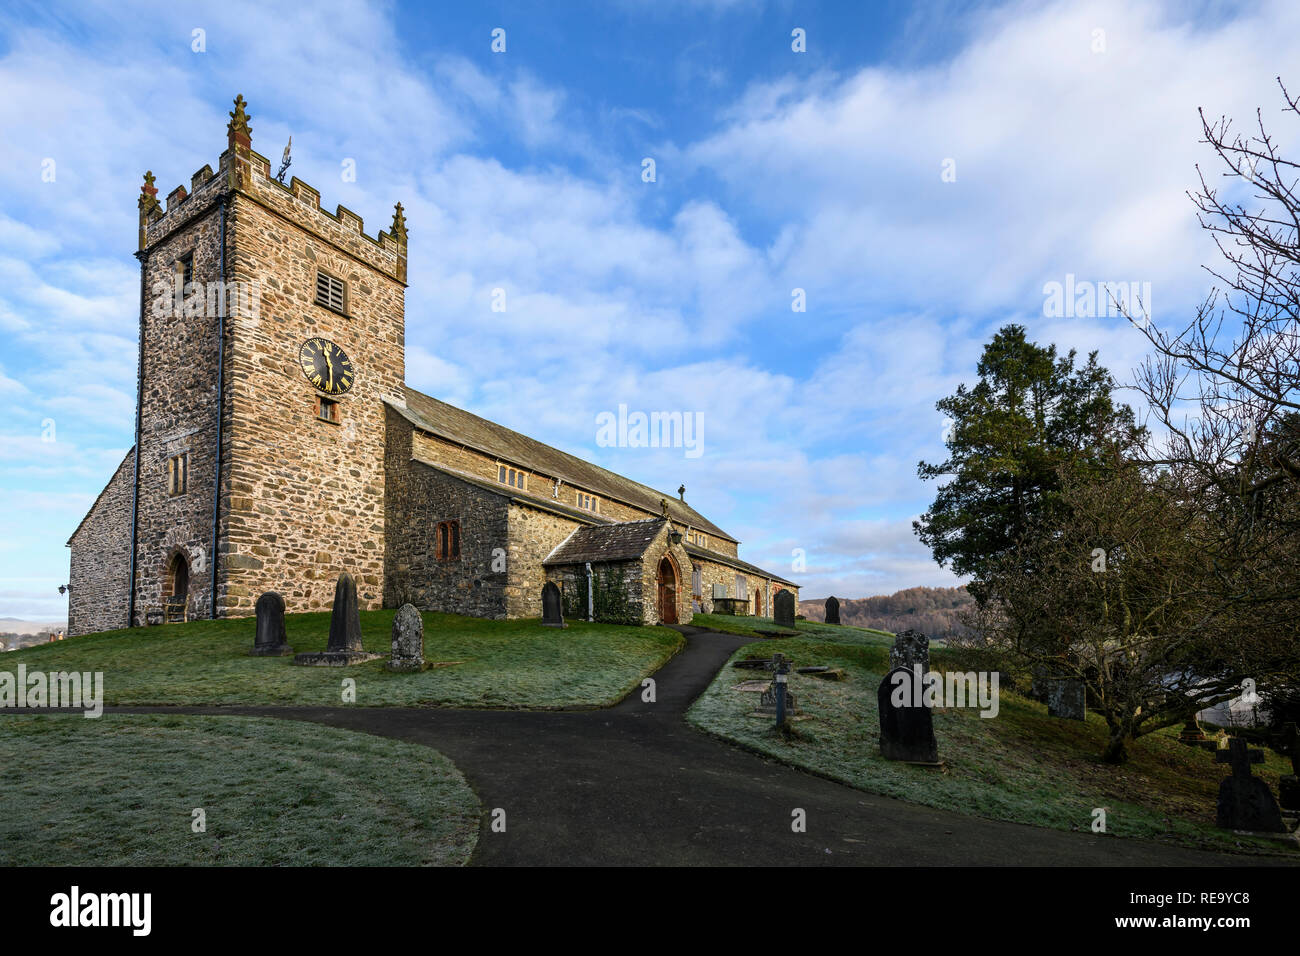 The imposing sight of St.Michael and All Angles church in Hawkshead - Stock Image